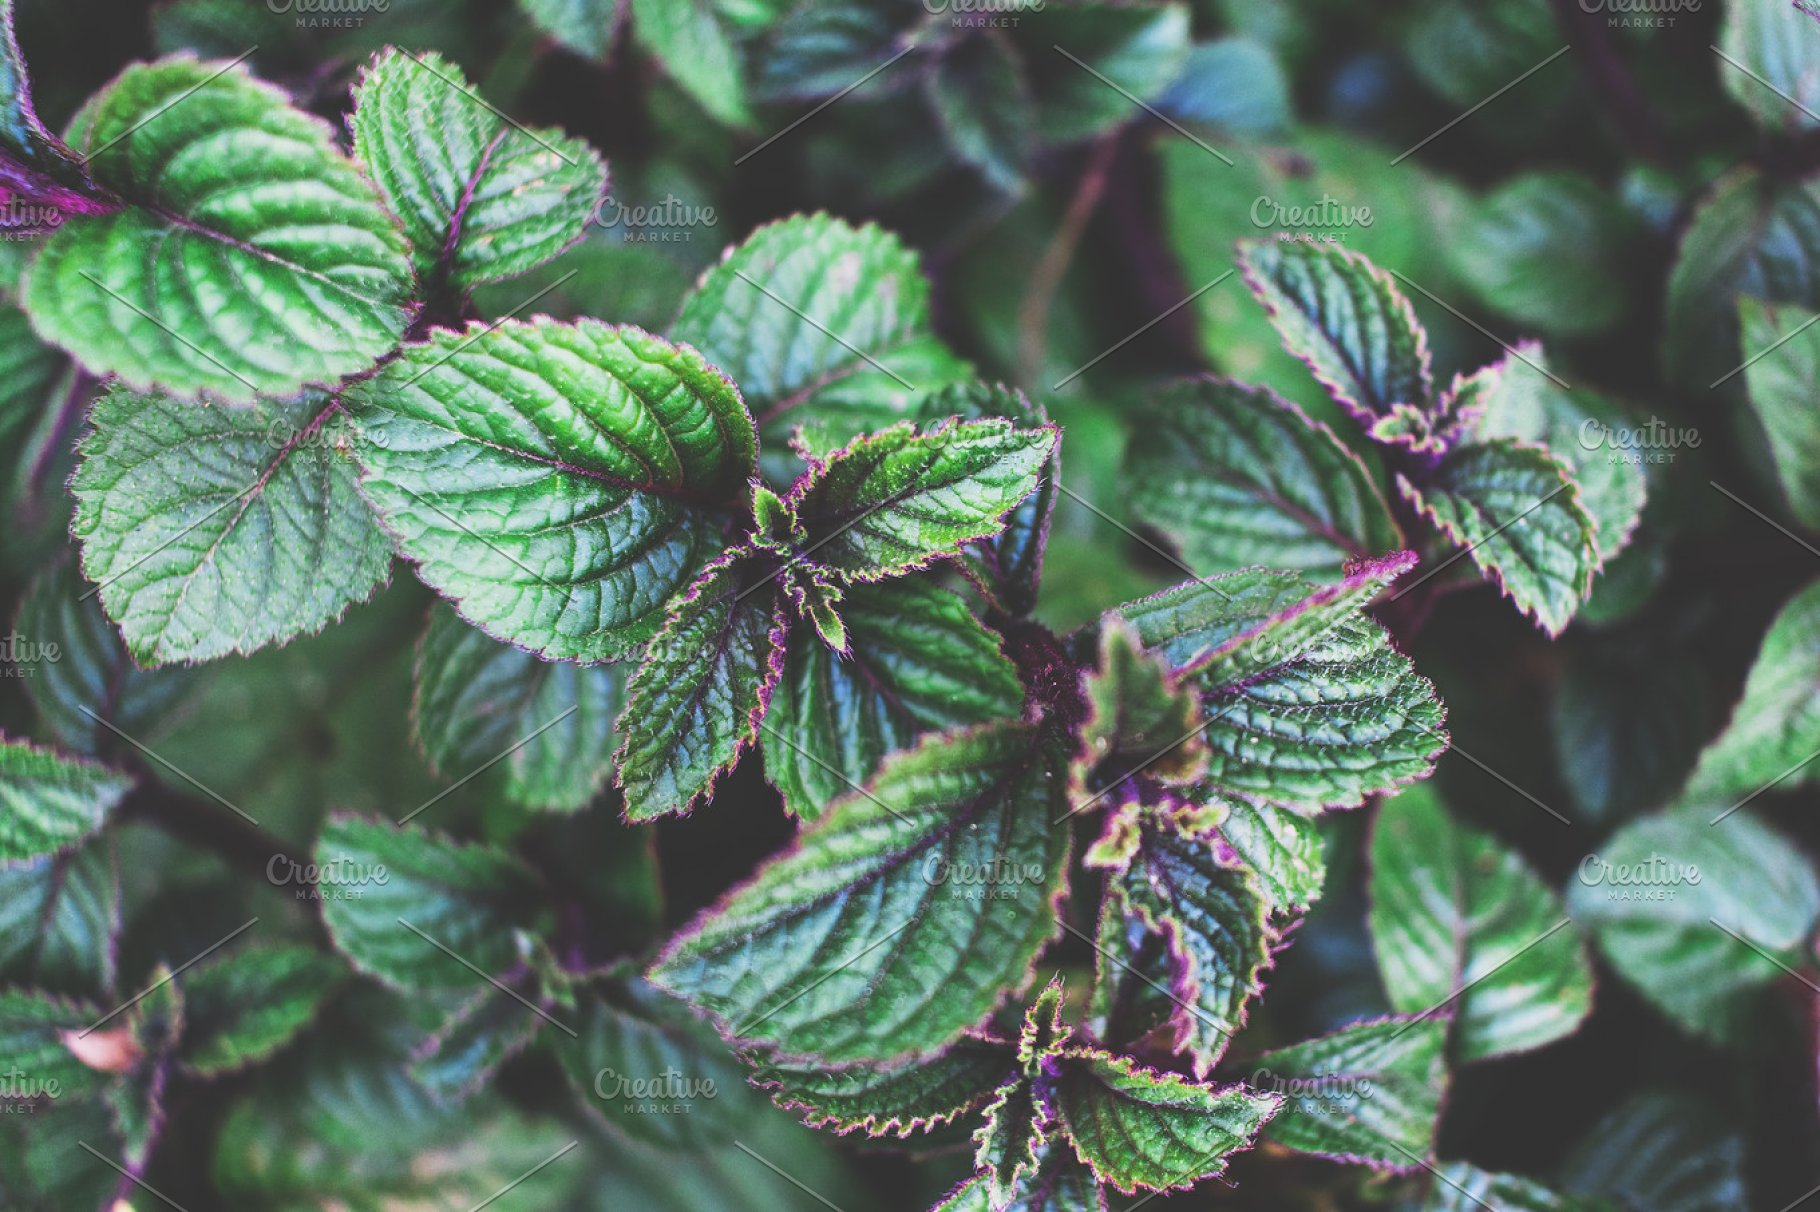 Dark Green And Purple Leaves High Quality Nature Stock Photos